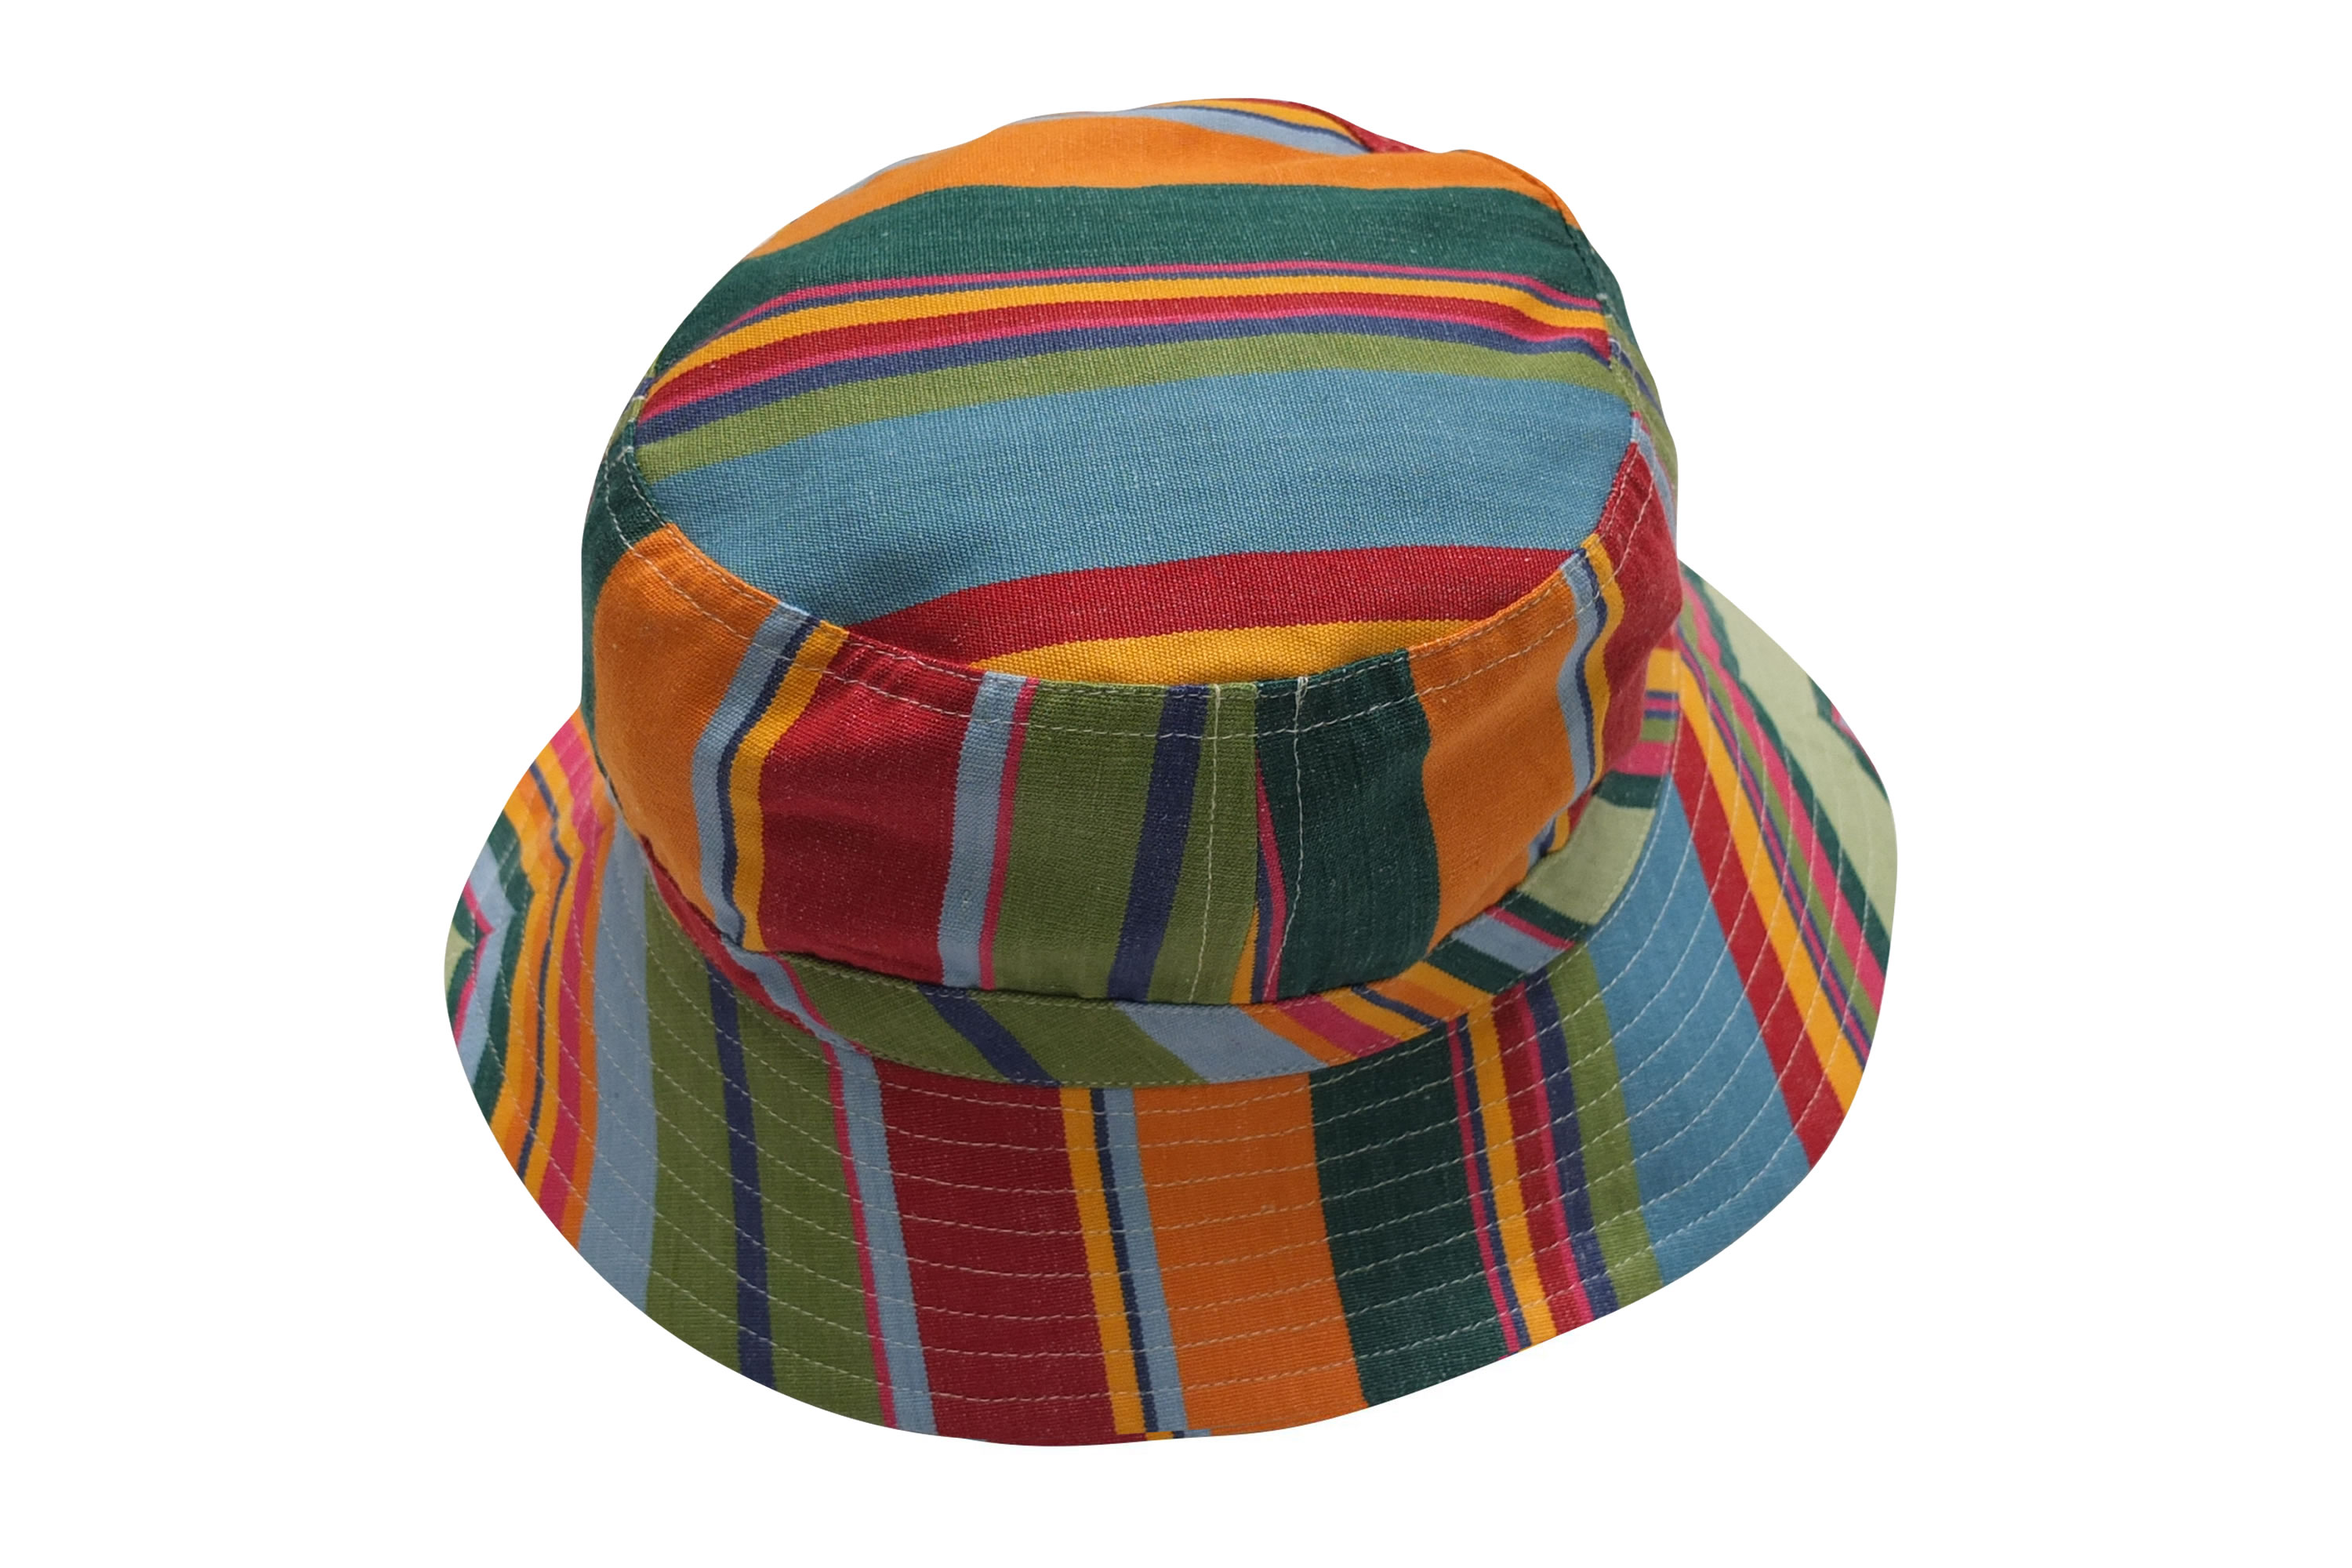 Bottle Green Striped Sun Hats | Sun Protection Hat  Bowling Stripes